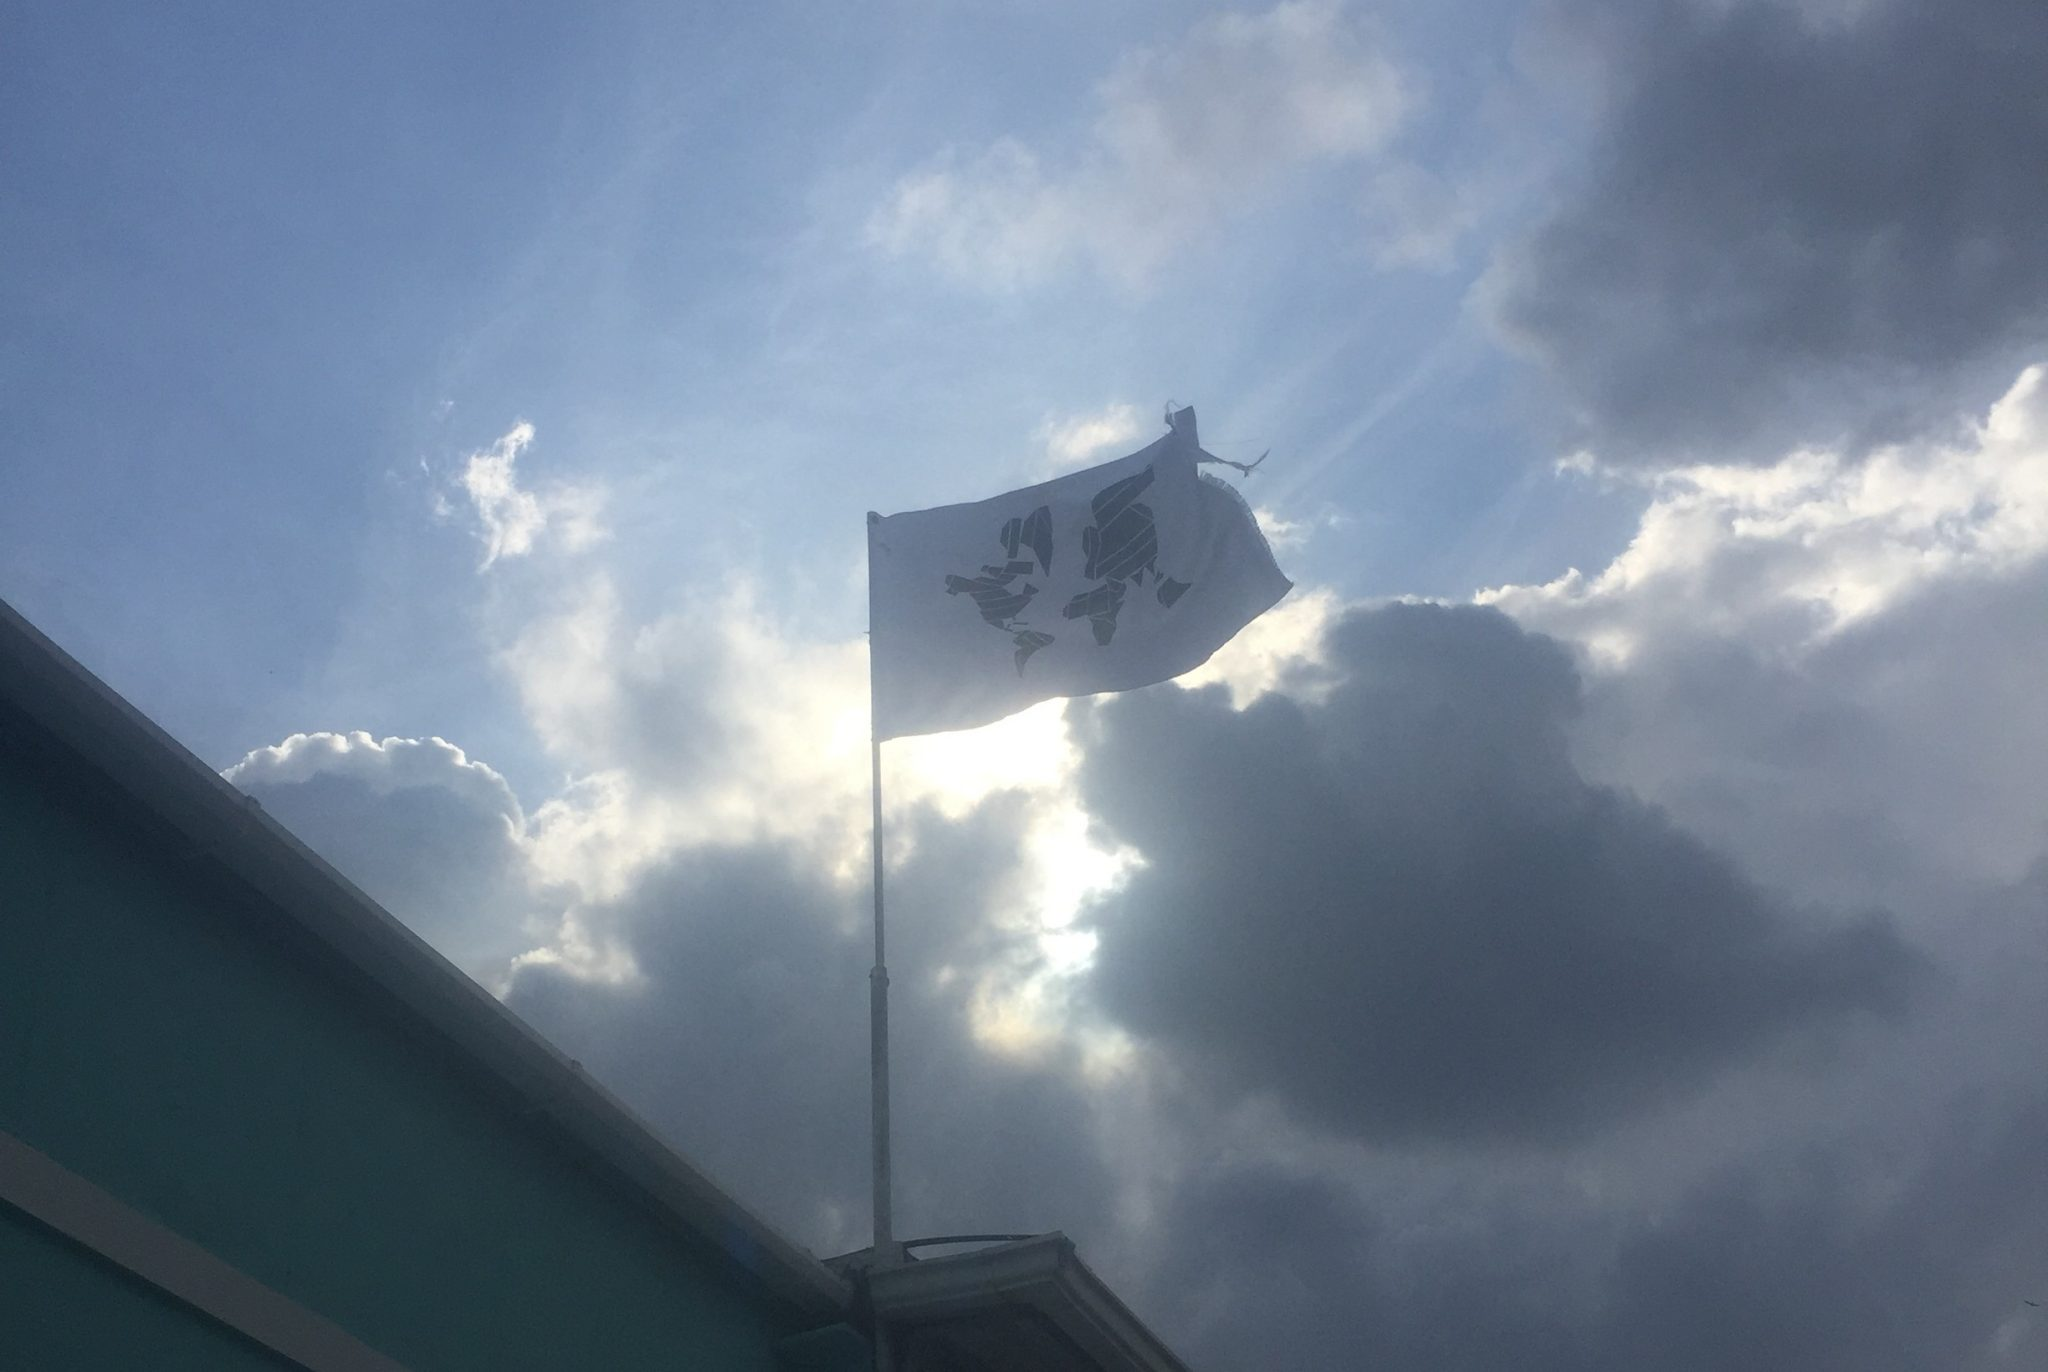 The Crosstown Rebels flag flying high at Get Lost Miami